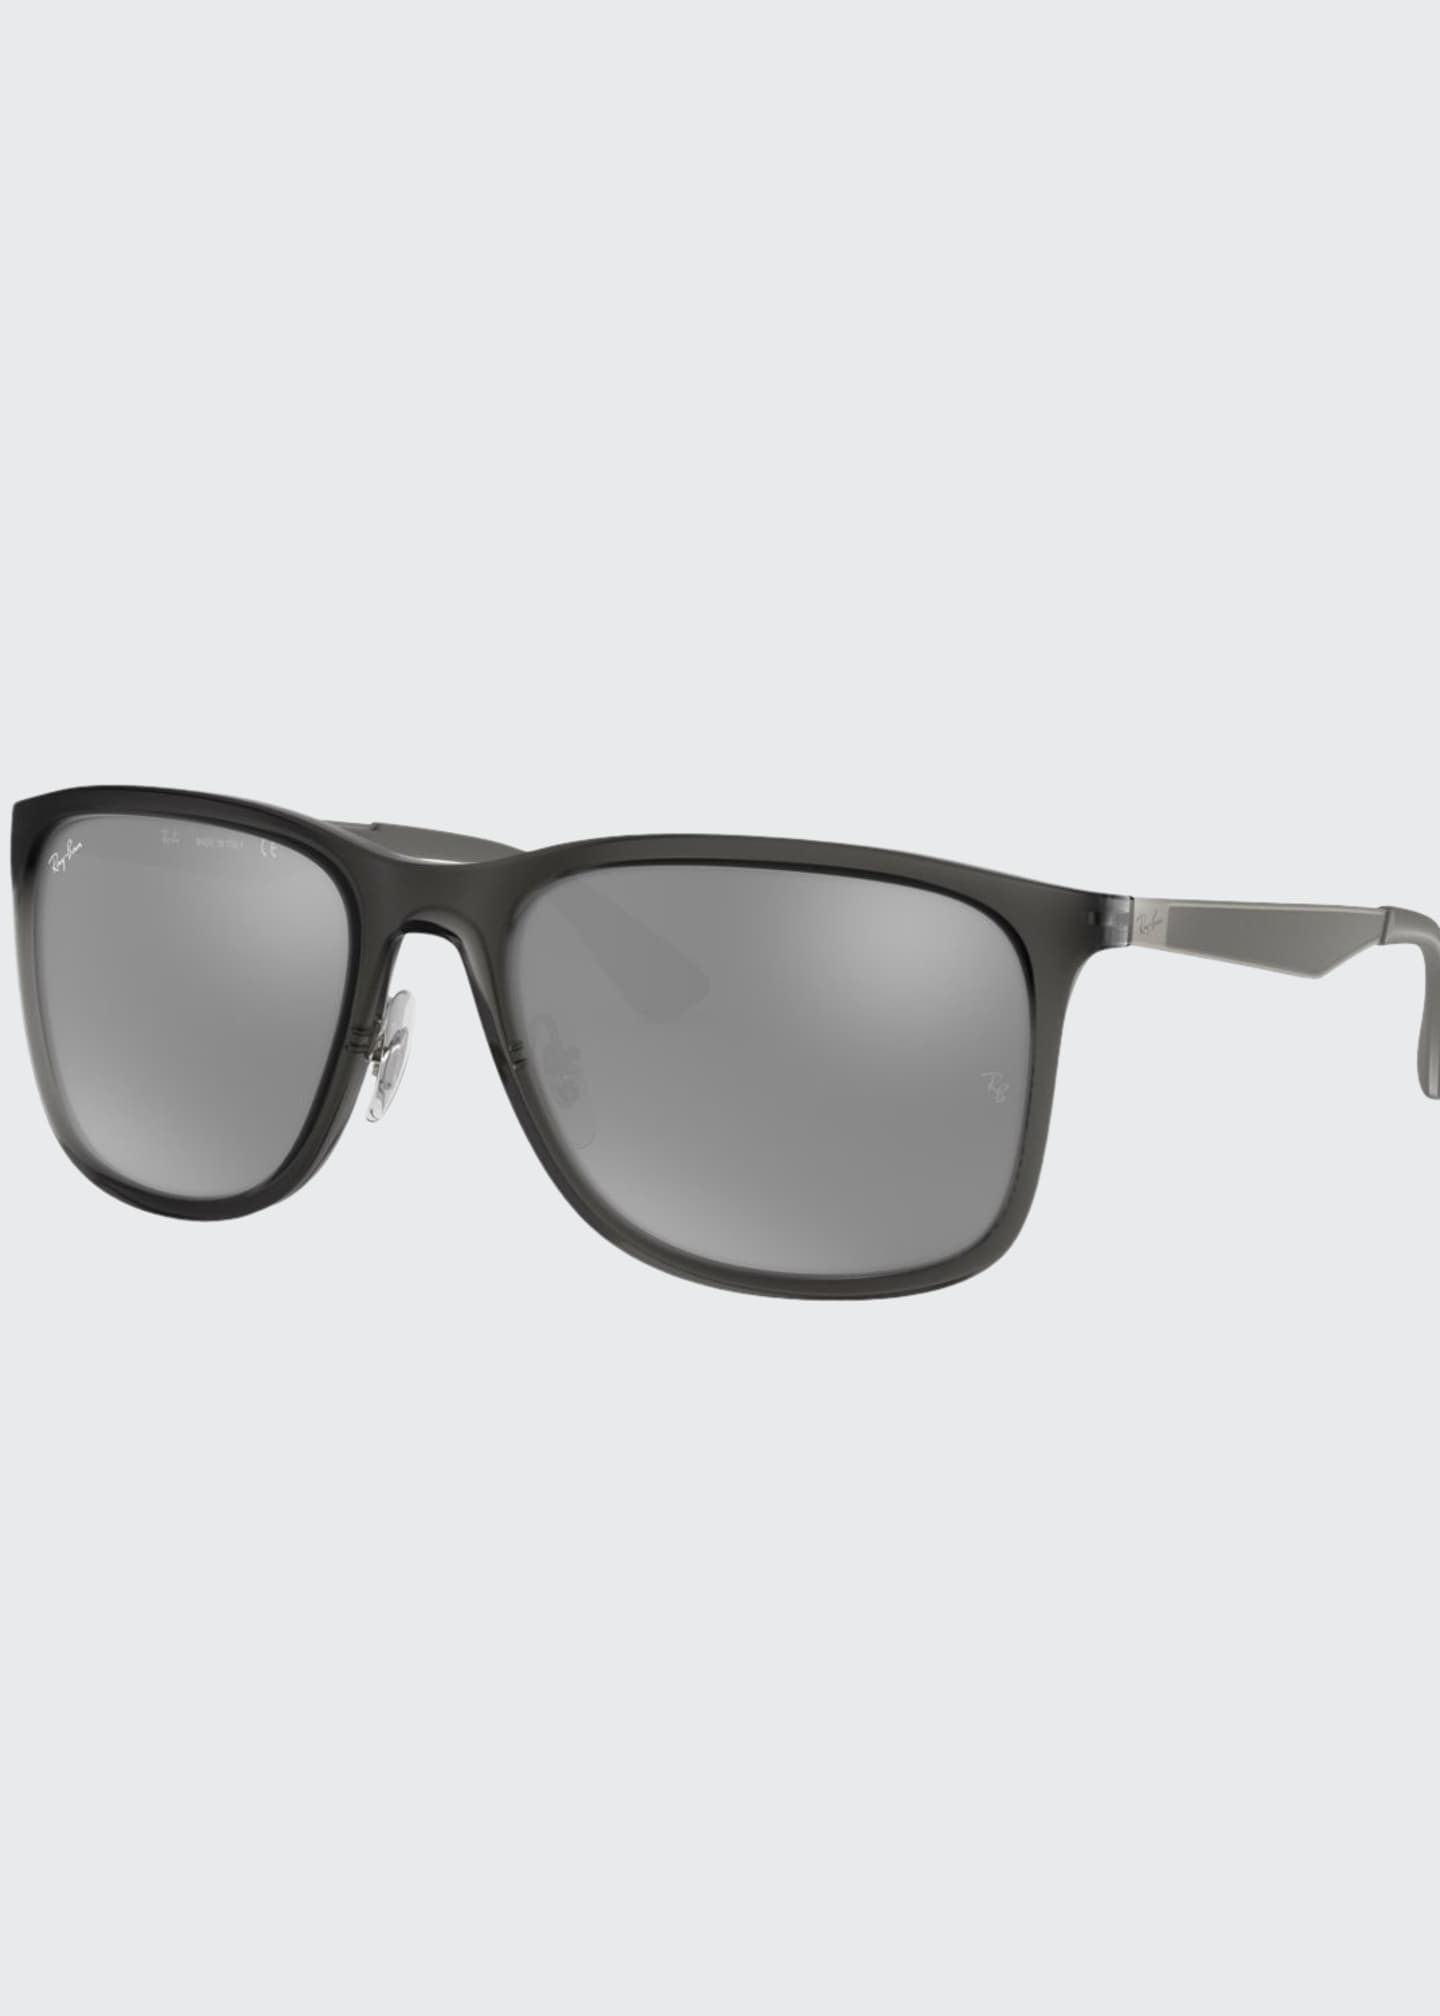 Image 1 of 2: Men's Square Mirrored Propionate Sunglasses